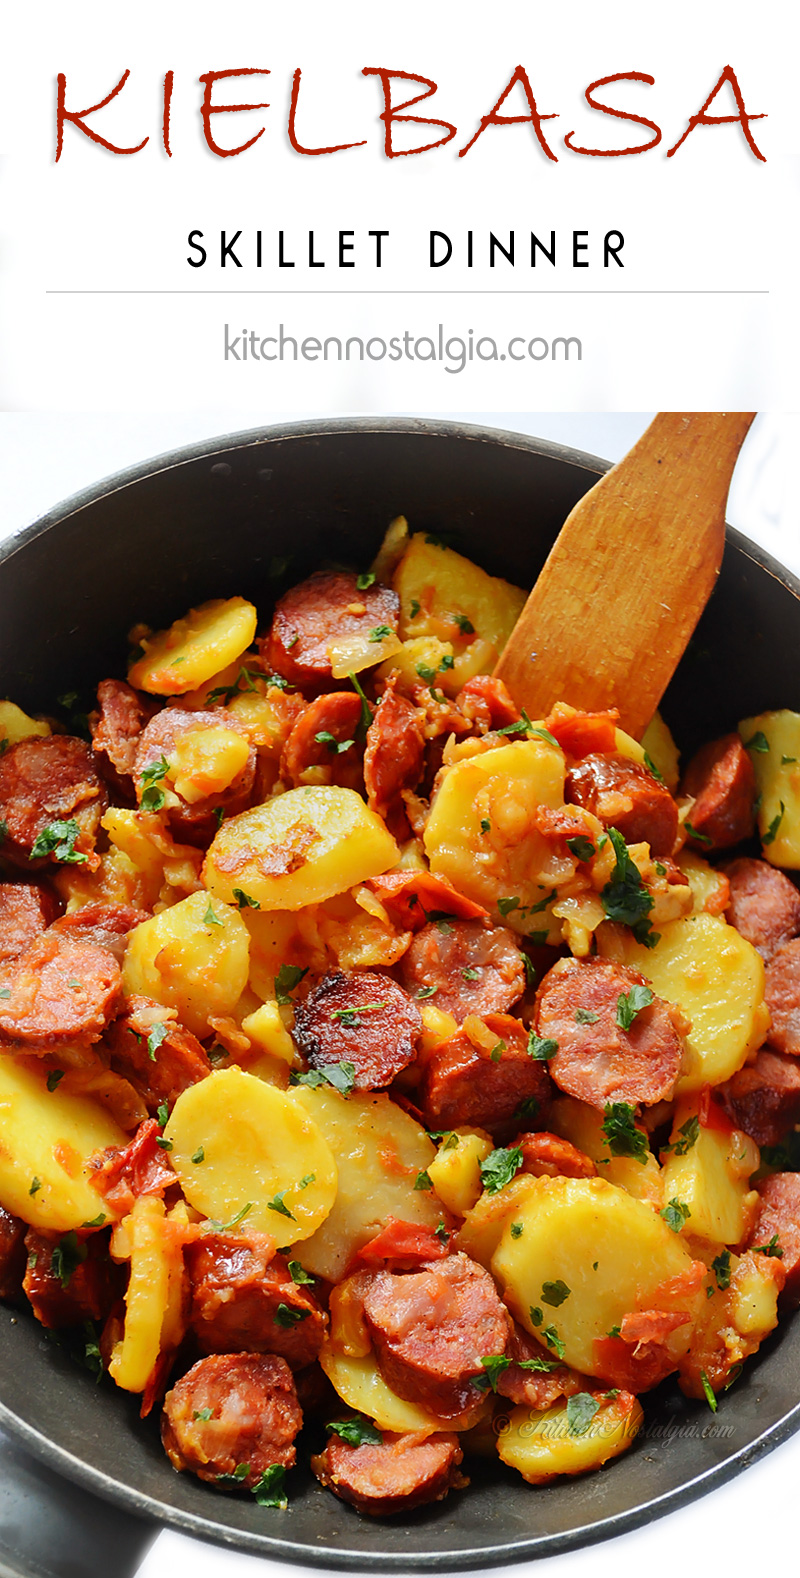 Kielbasa and Potatoes Skillet Dinner